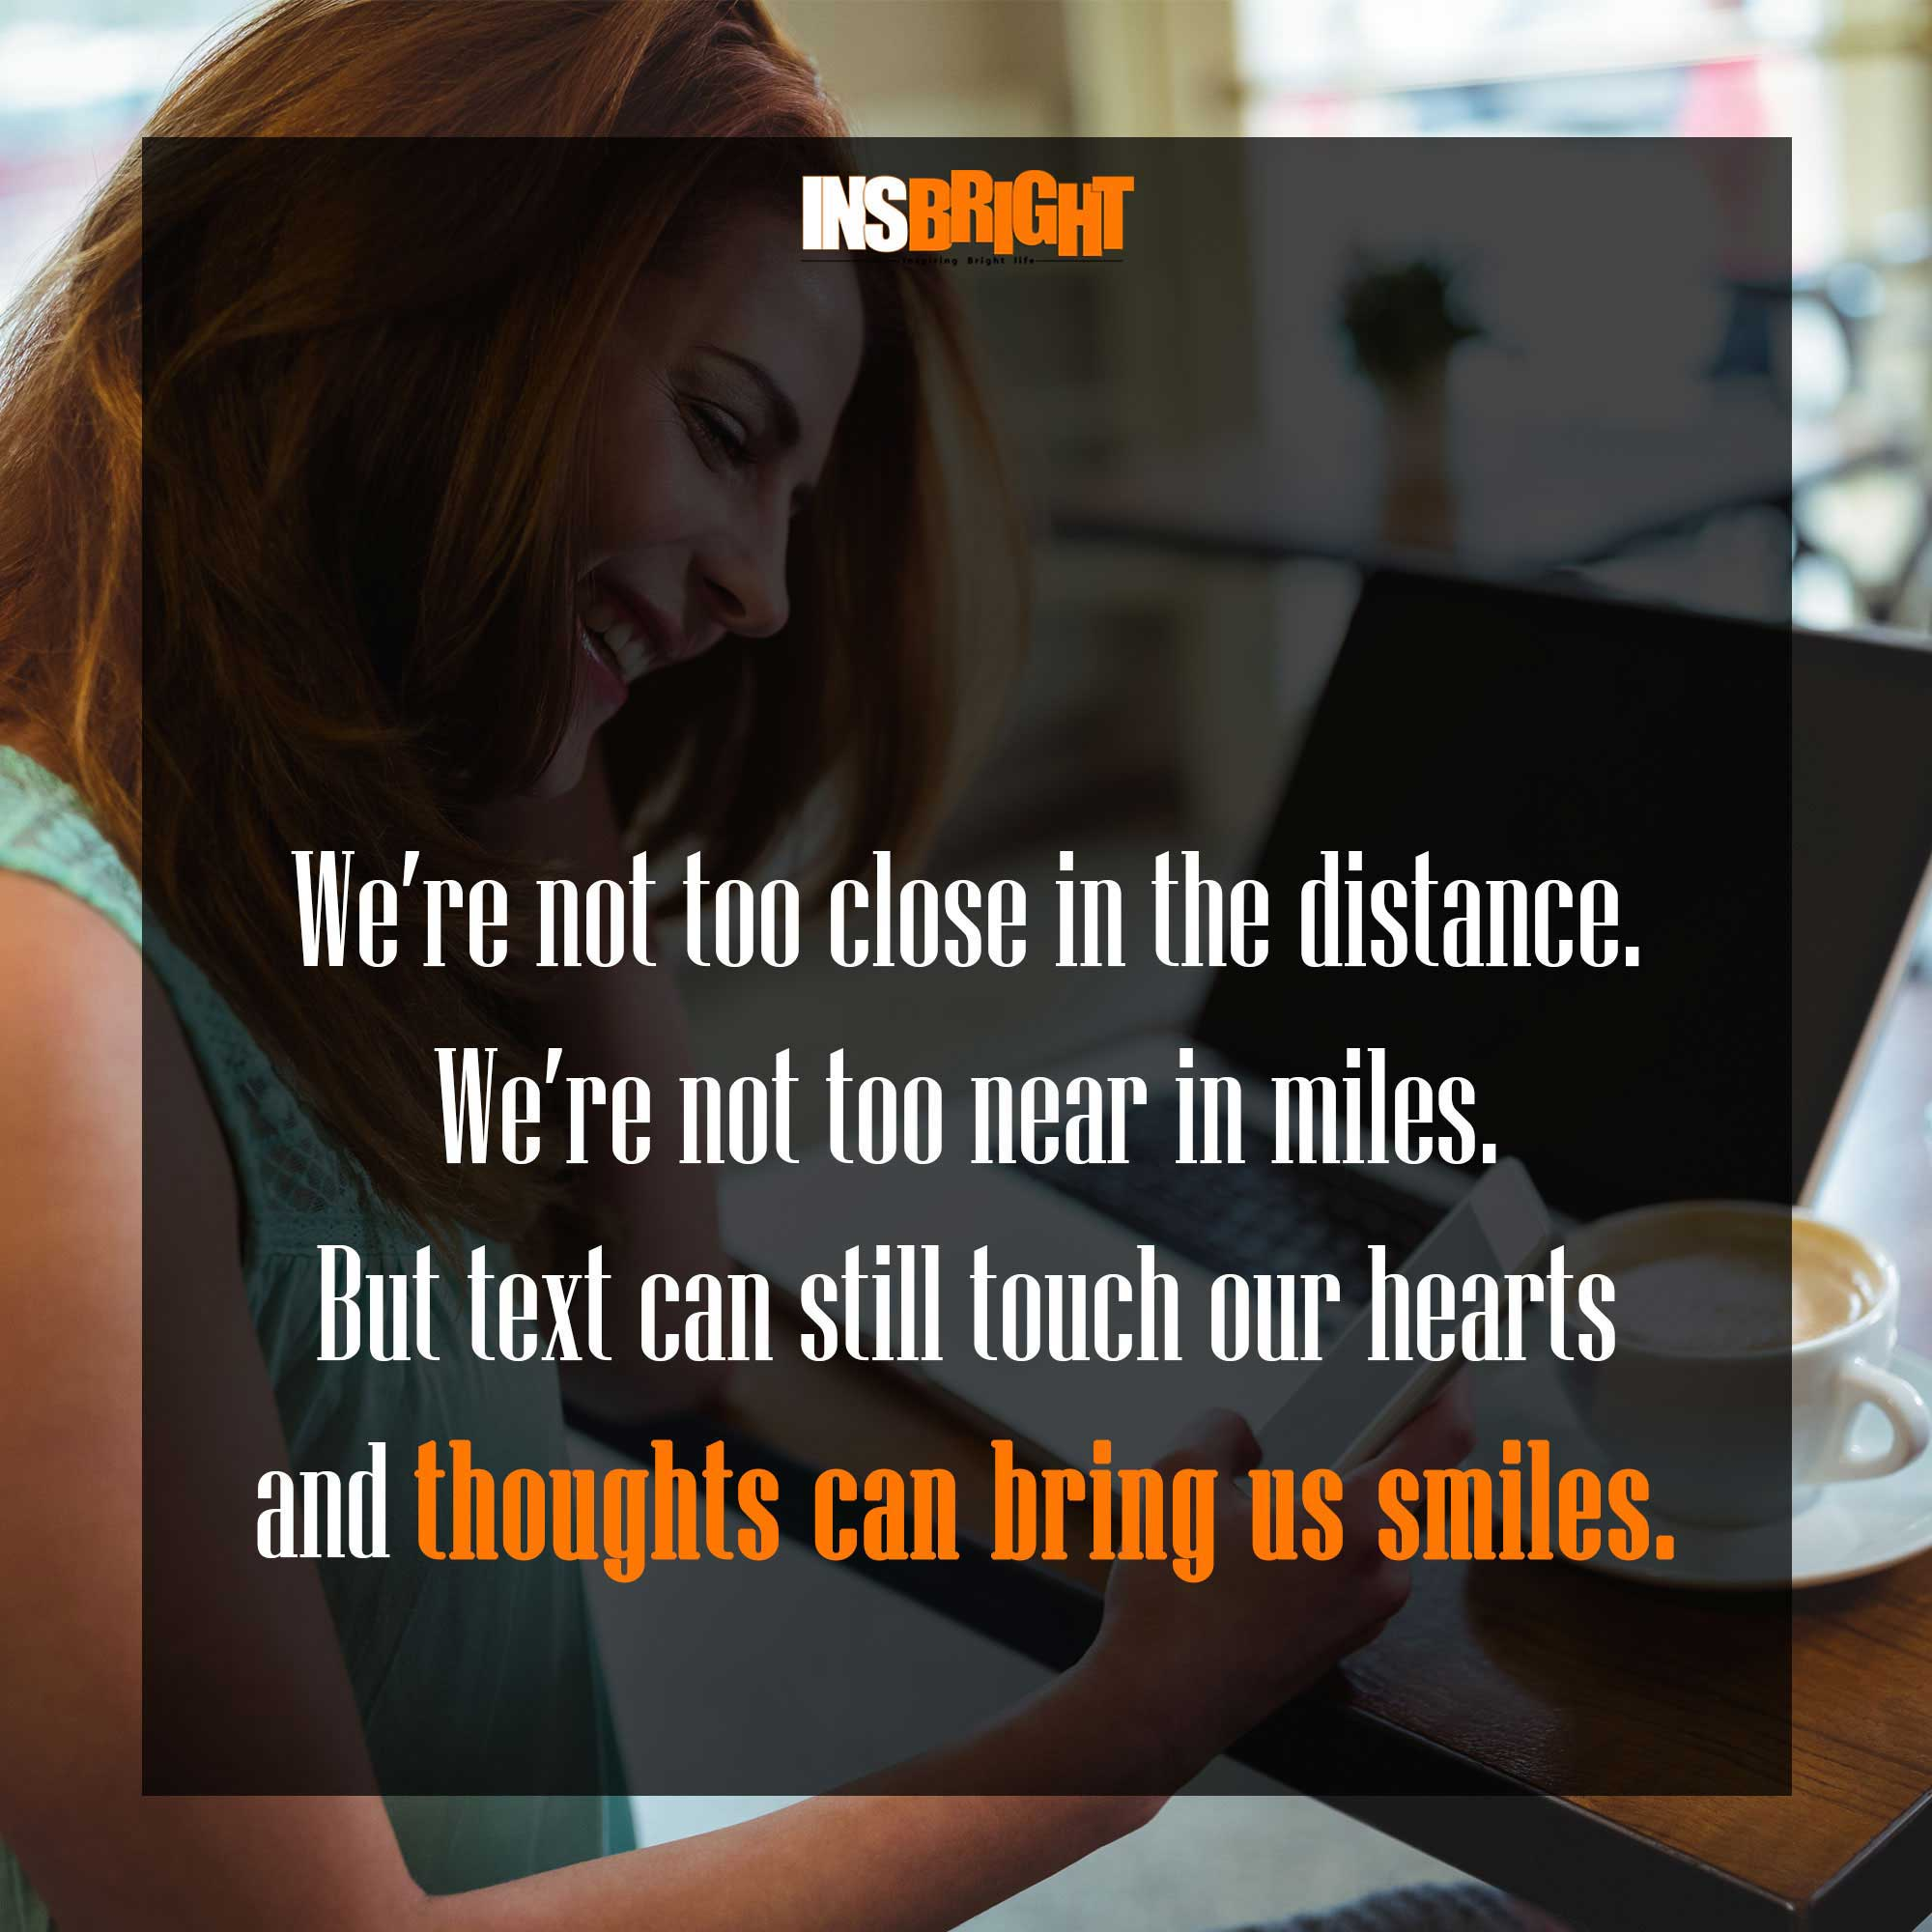 Long Distance Relationship Quotes For Him Or Her With Images Insbright